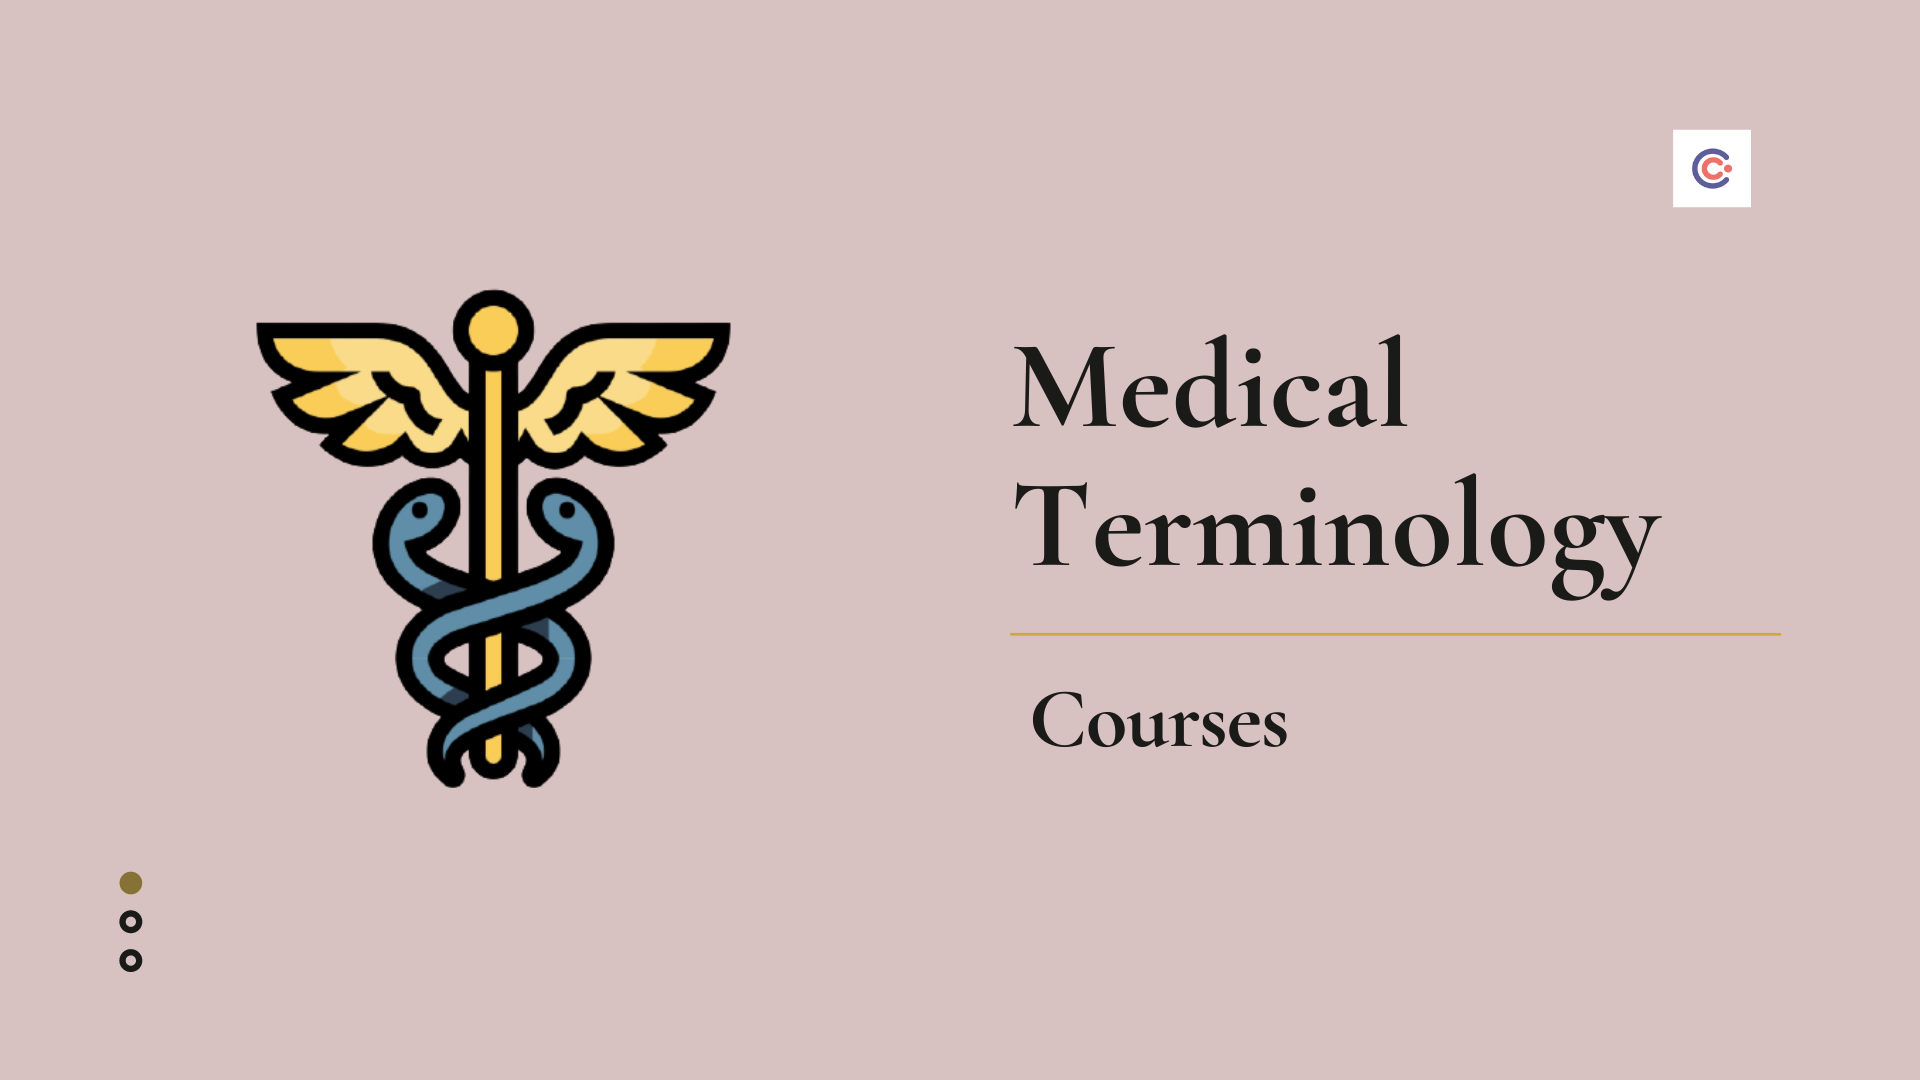 6 Best Medical Terminology Courses - Learn Medical Terminology Online